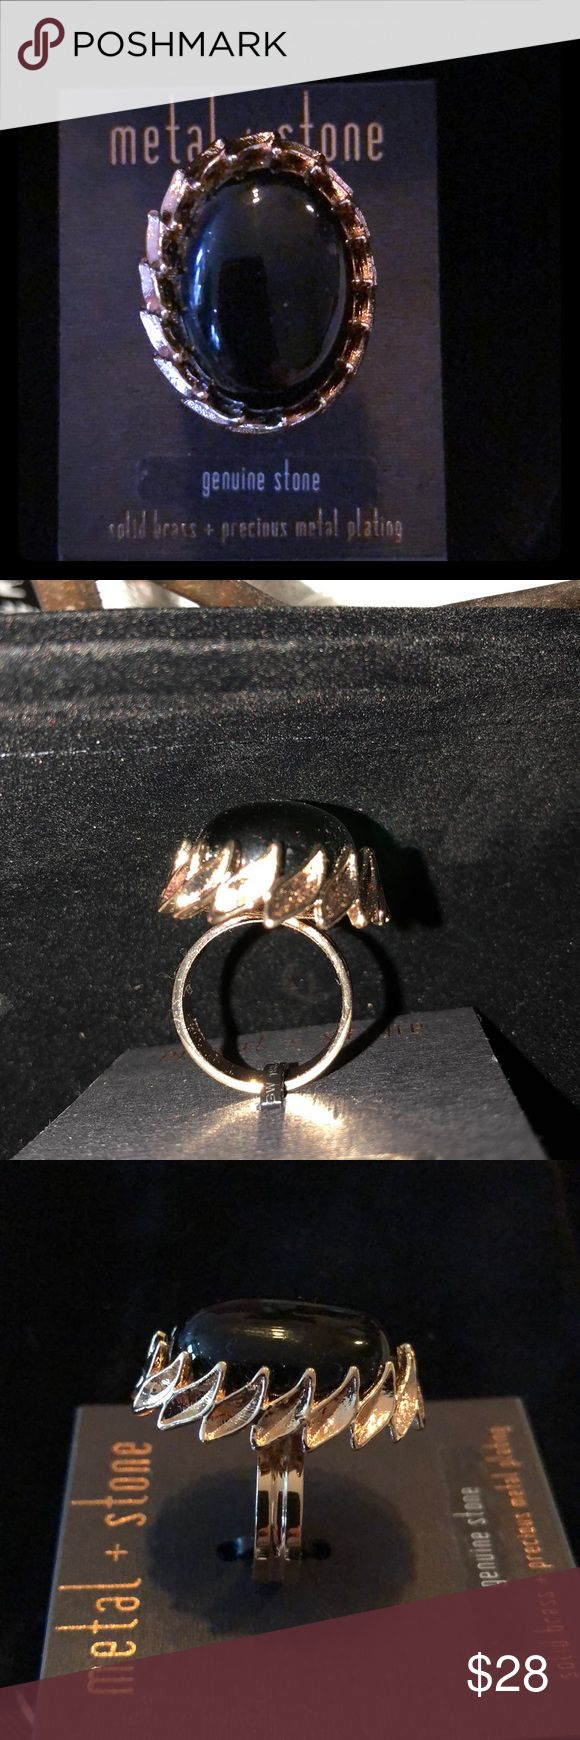 🆕METAL & Stone Genuine Blk Stone on solid Brass 🆕METAL & Stone Genuine Blk Stone on solid Brass - Precious Metal Plating Ring  Size 8 Brand new on card Metal & Stone Jewelry Rings